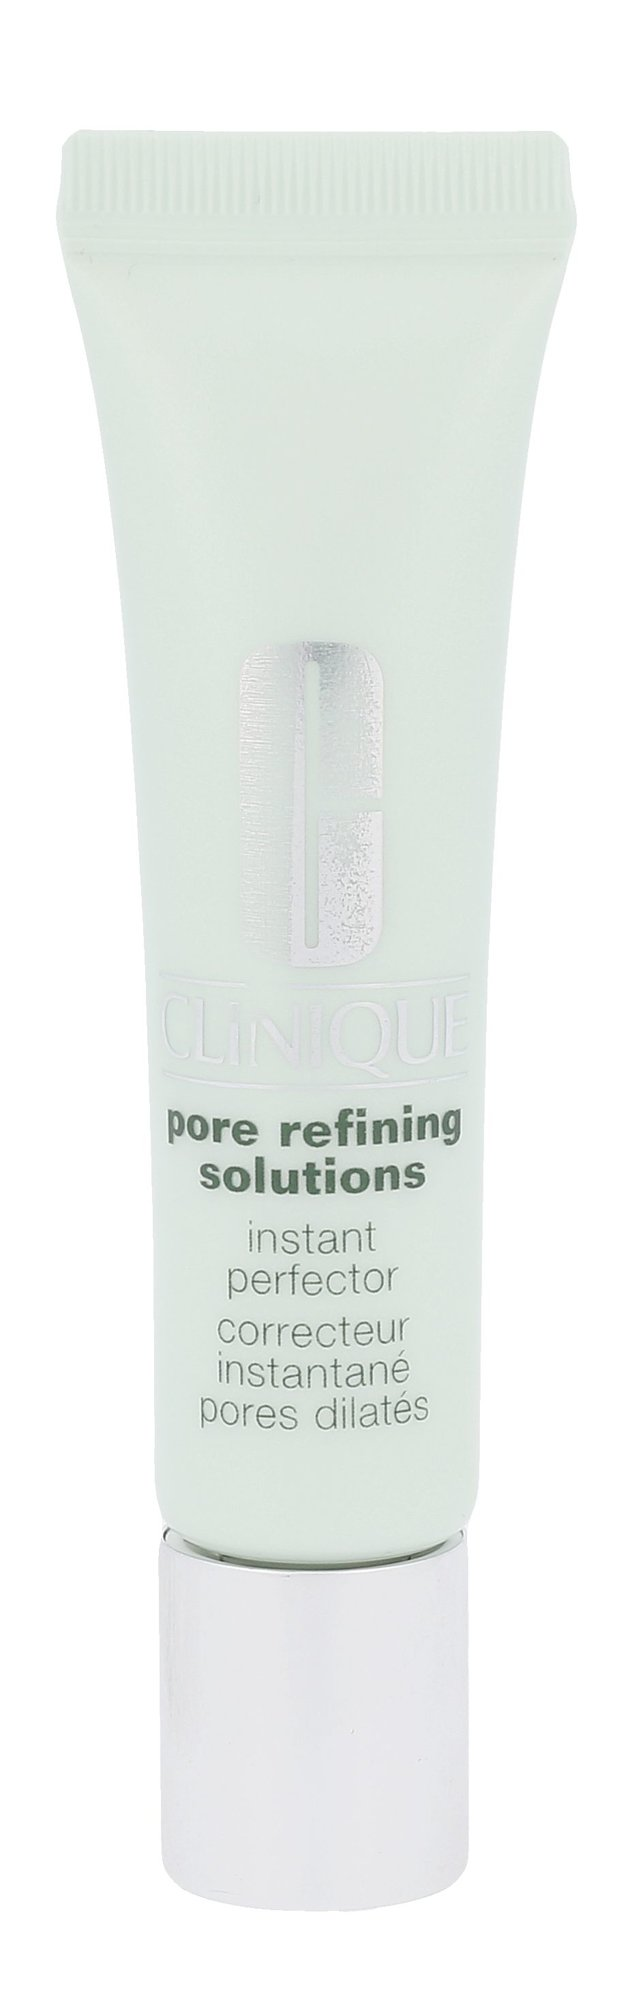 Clinique Pore Refining Solutions Cosmetic 15ml Invisible Deep